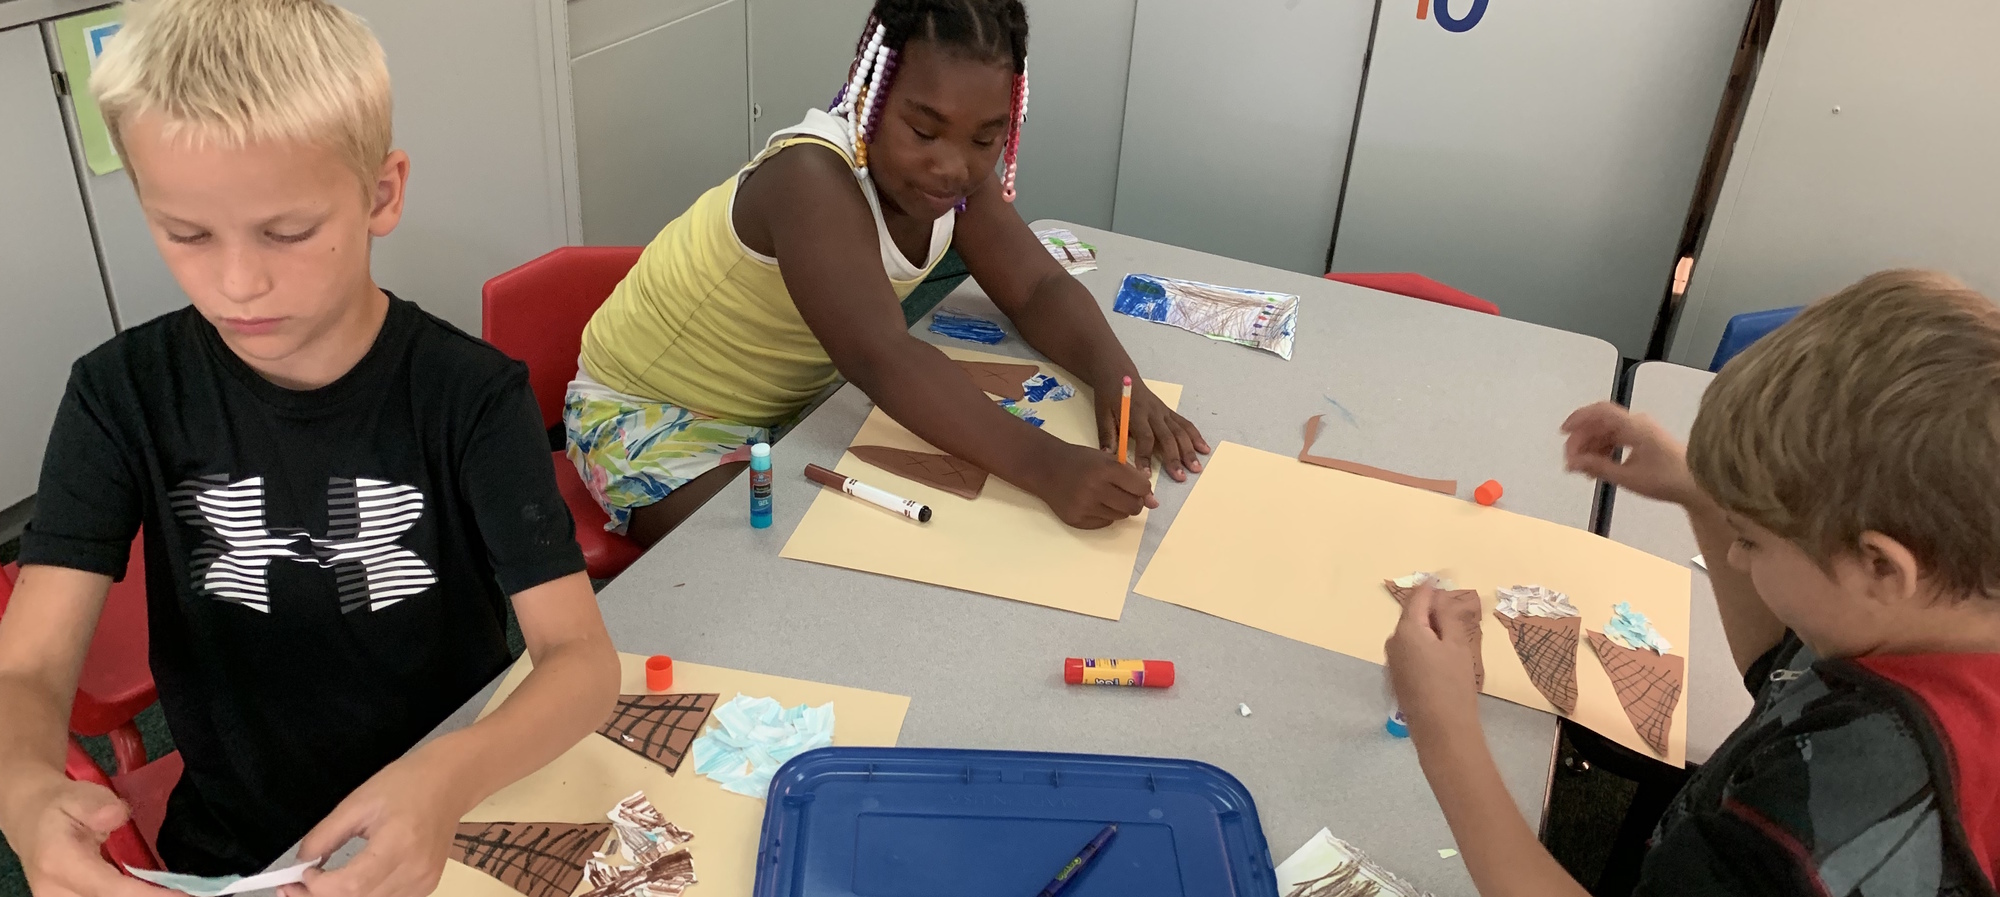 Students working on project at summer learning